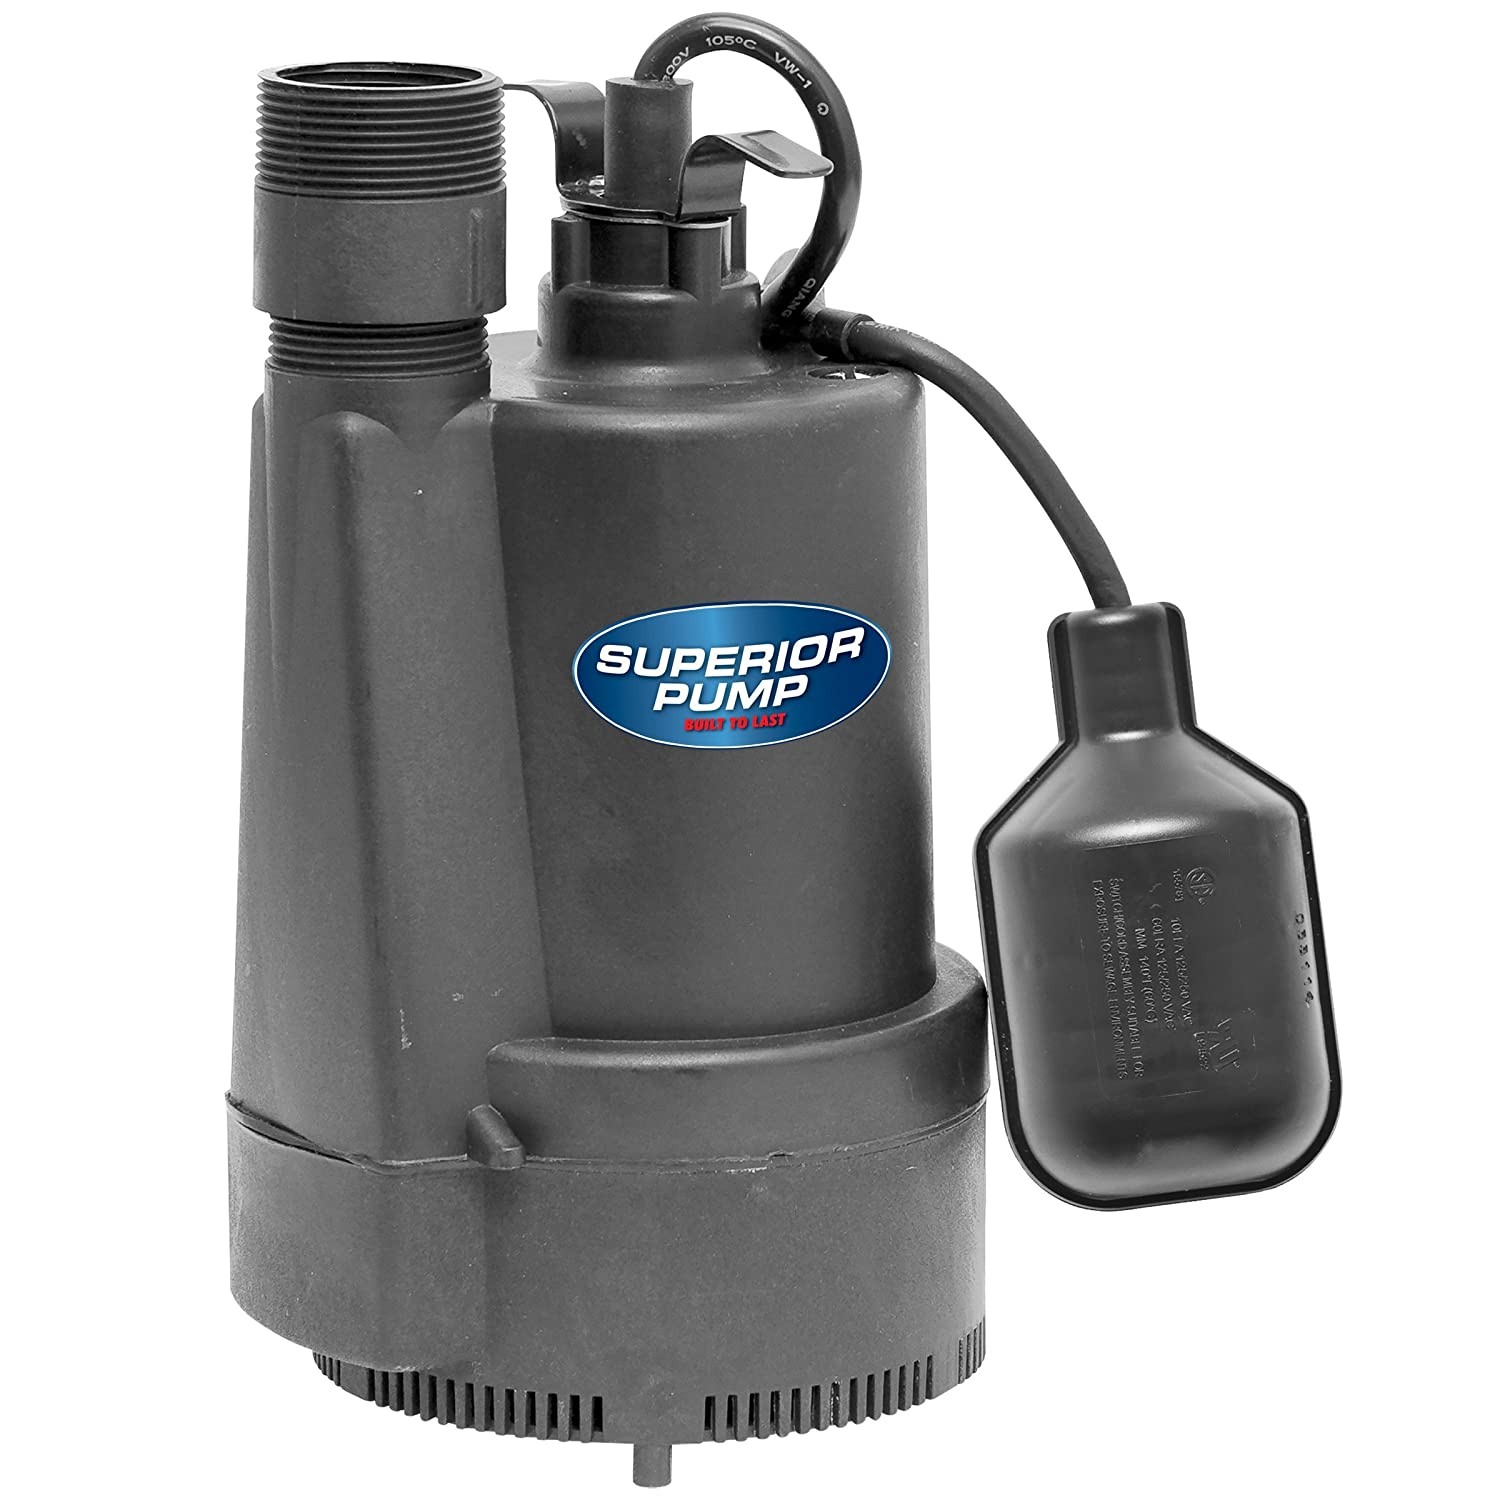 Superior Pump 92330 1 3 Hp Thermoplastic Sump With Tethered French Drain To Diagram Float Switch Black Submersible